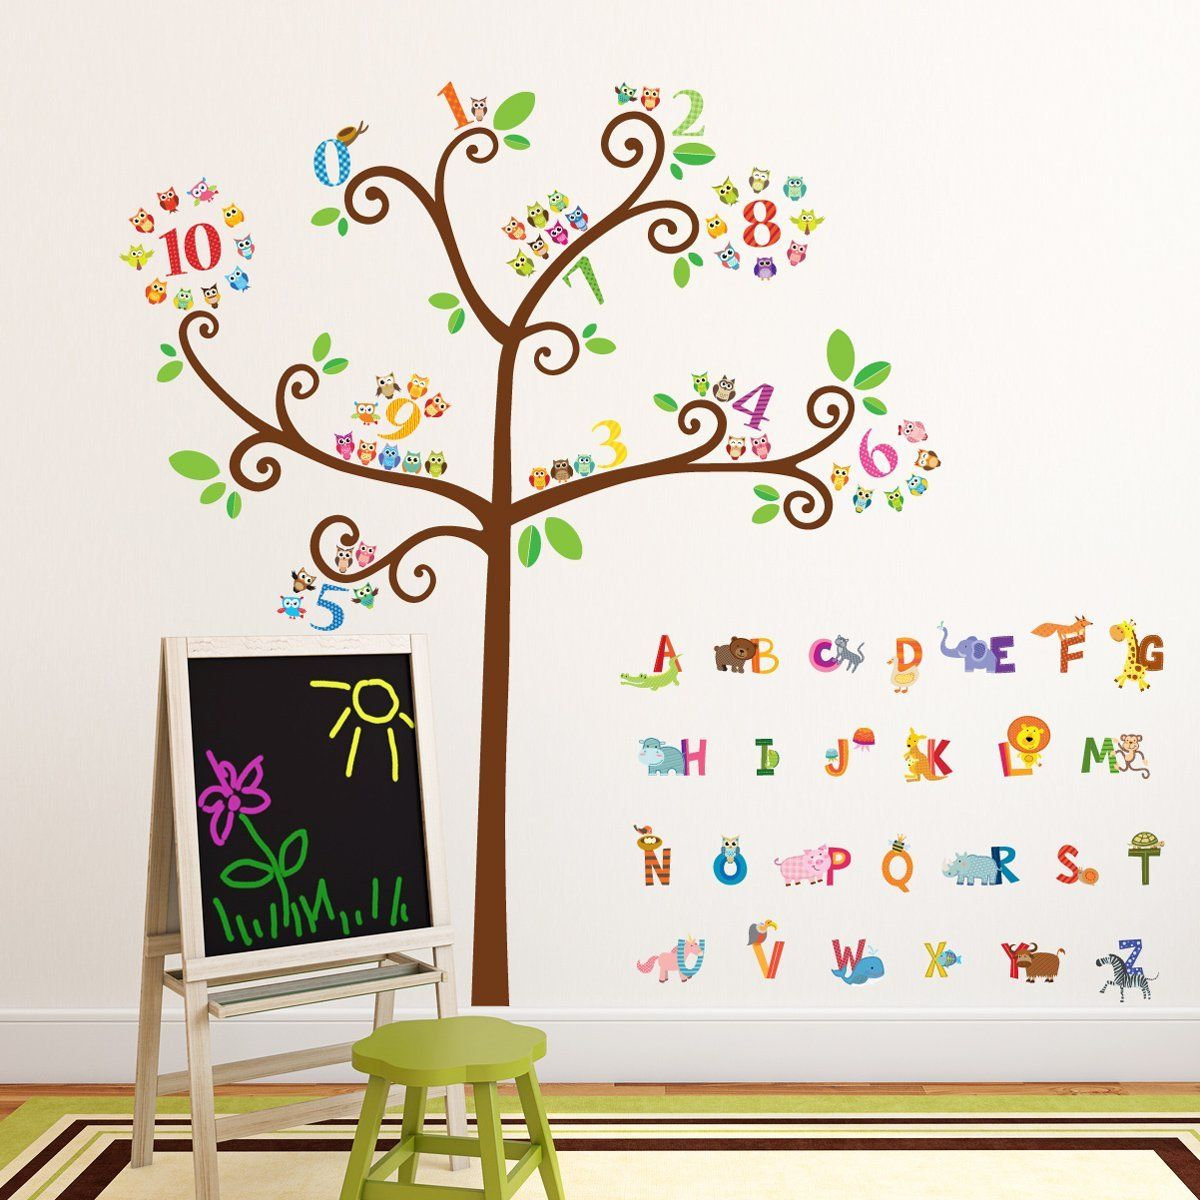 amazon com decowall da 1503 animal alphabet and numbers tree amazon com decowall da 1503 animal alphabet and numbers tree wall